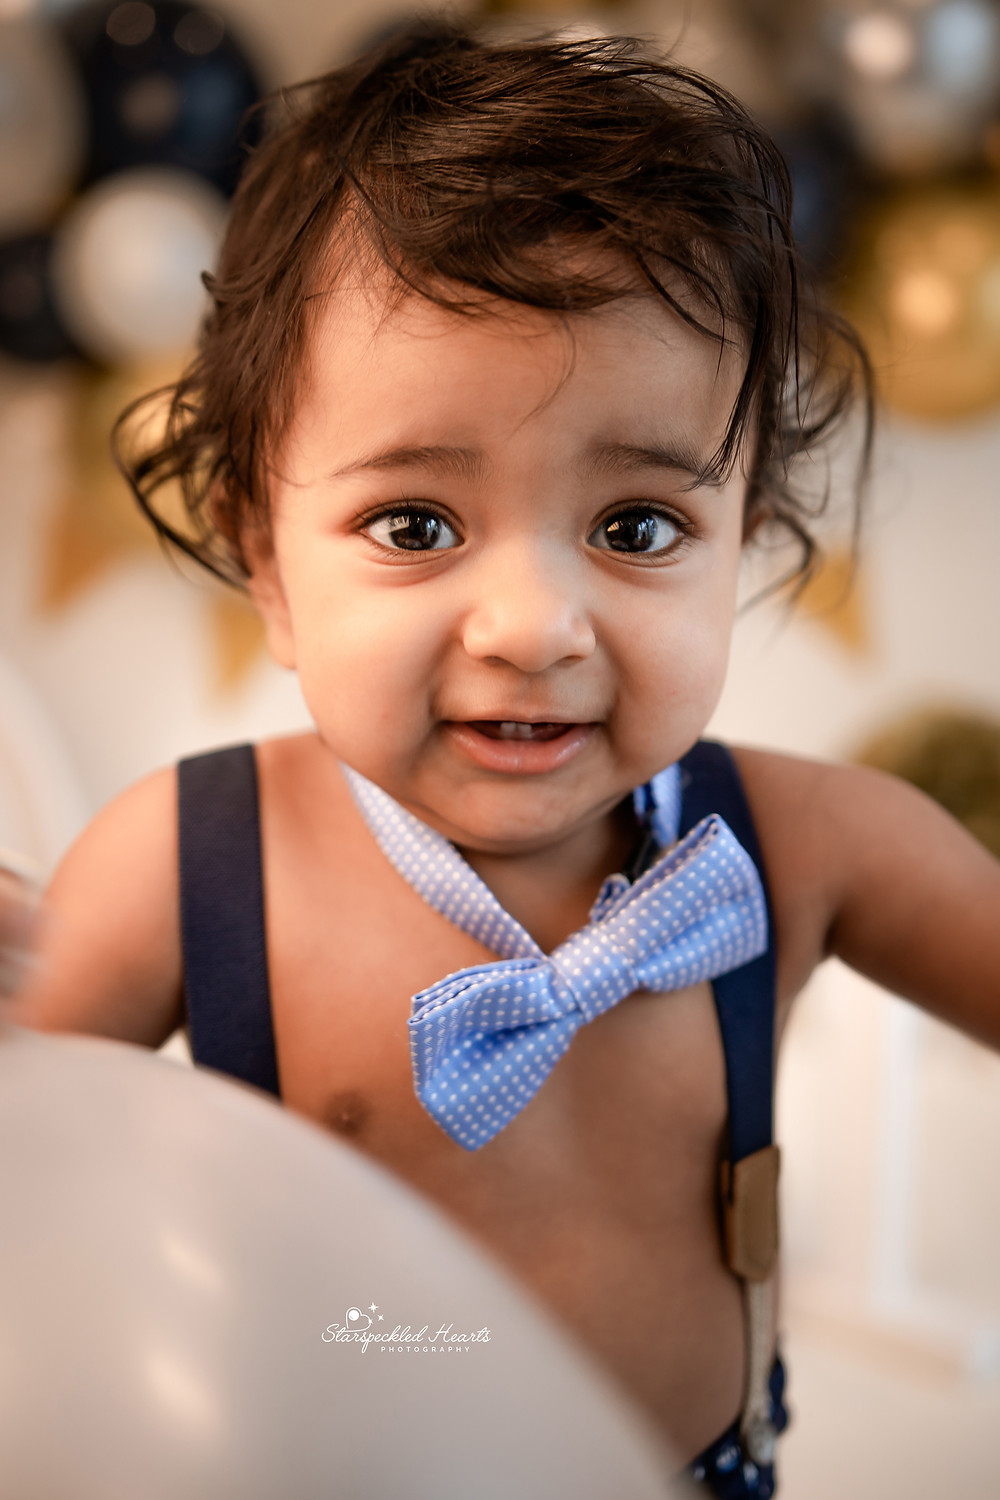 bright eyed baby boy wearing a blue crown with a 1 on it and a matching bow tie for his cake smash session in hampshire